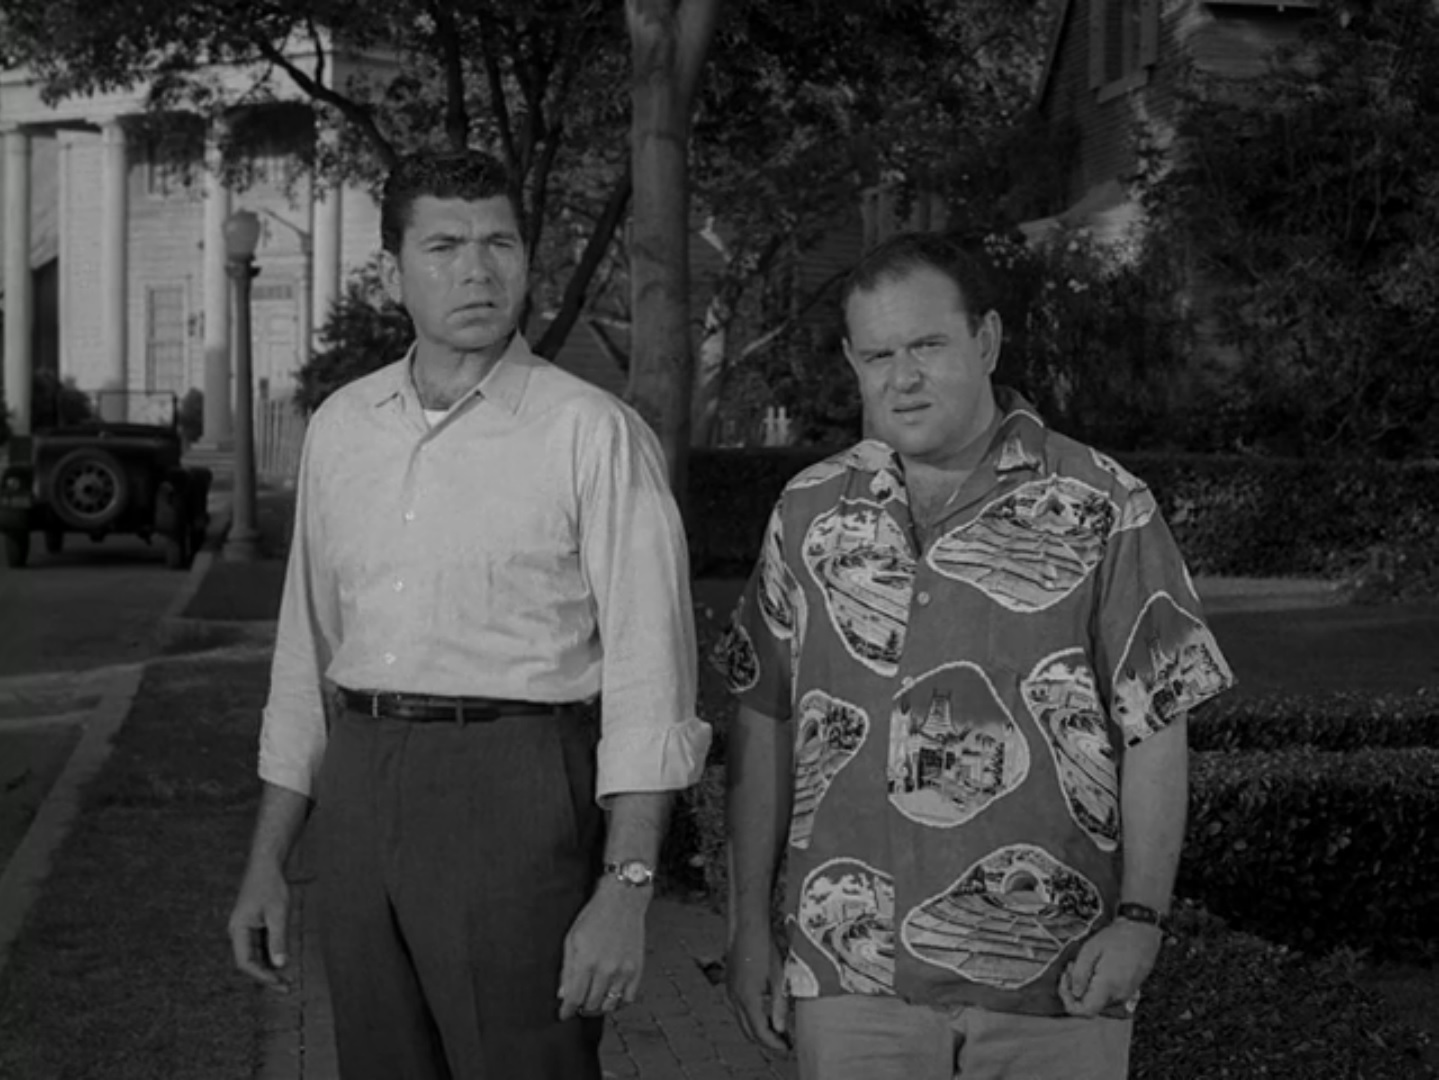 The Twilight Zone Episode 22: The Monsters Are Due on Maple Street ...